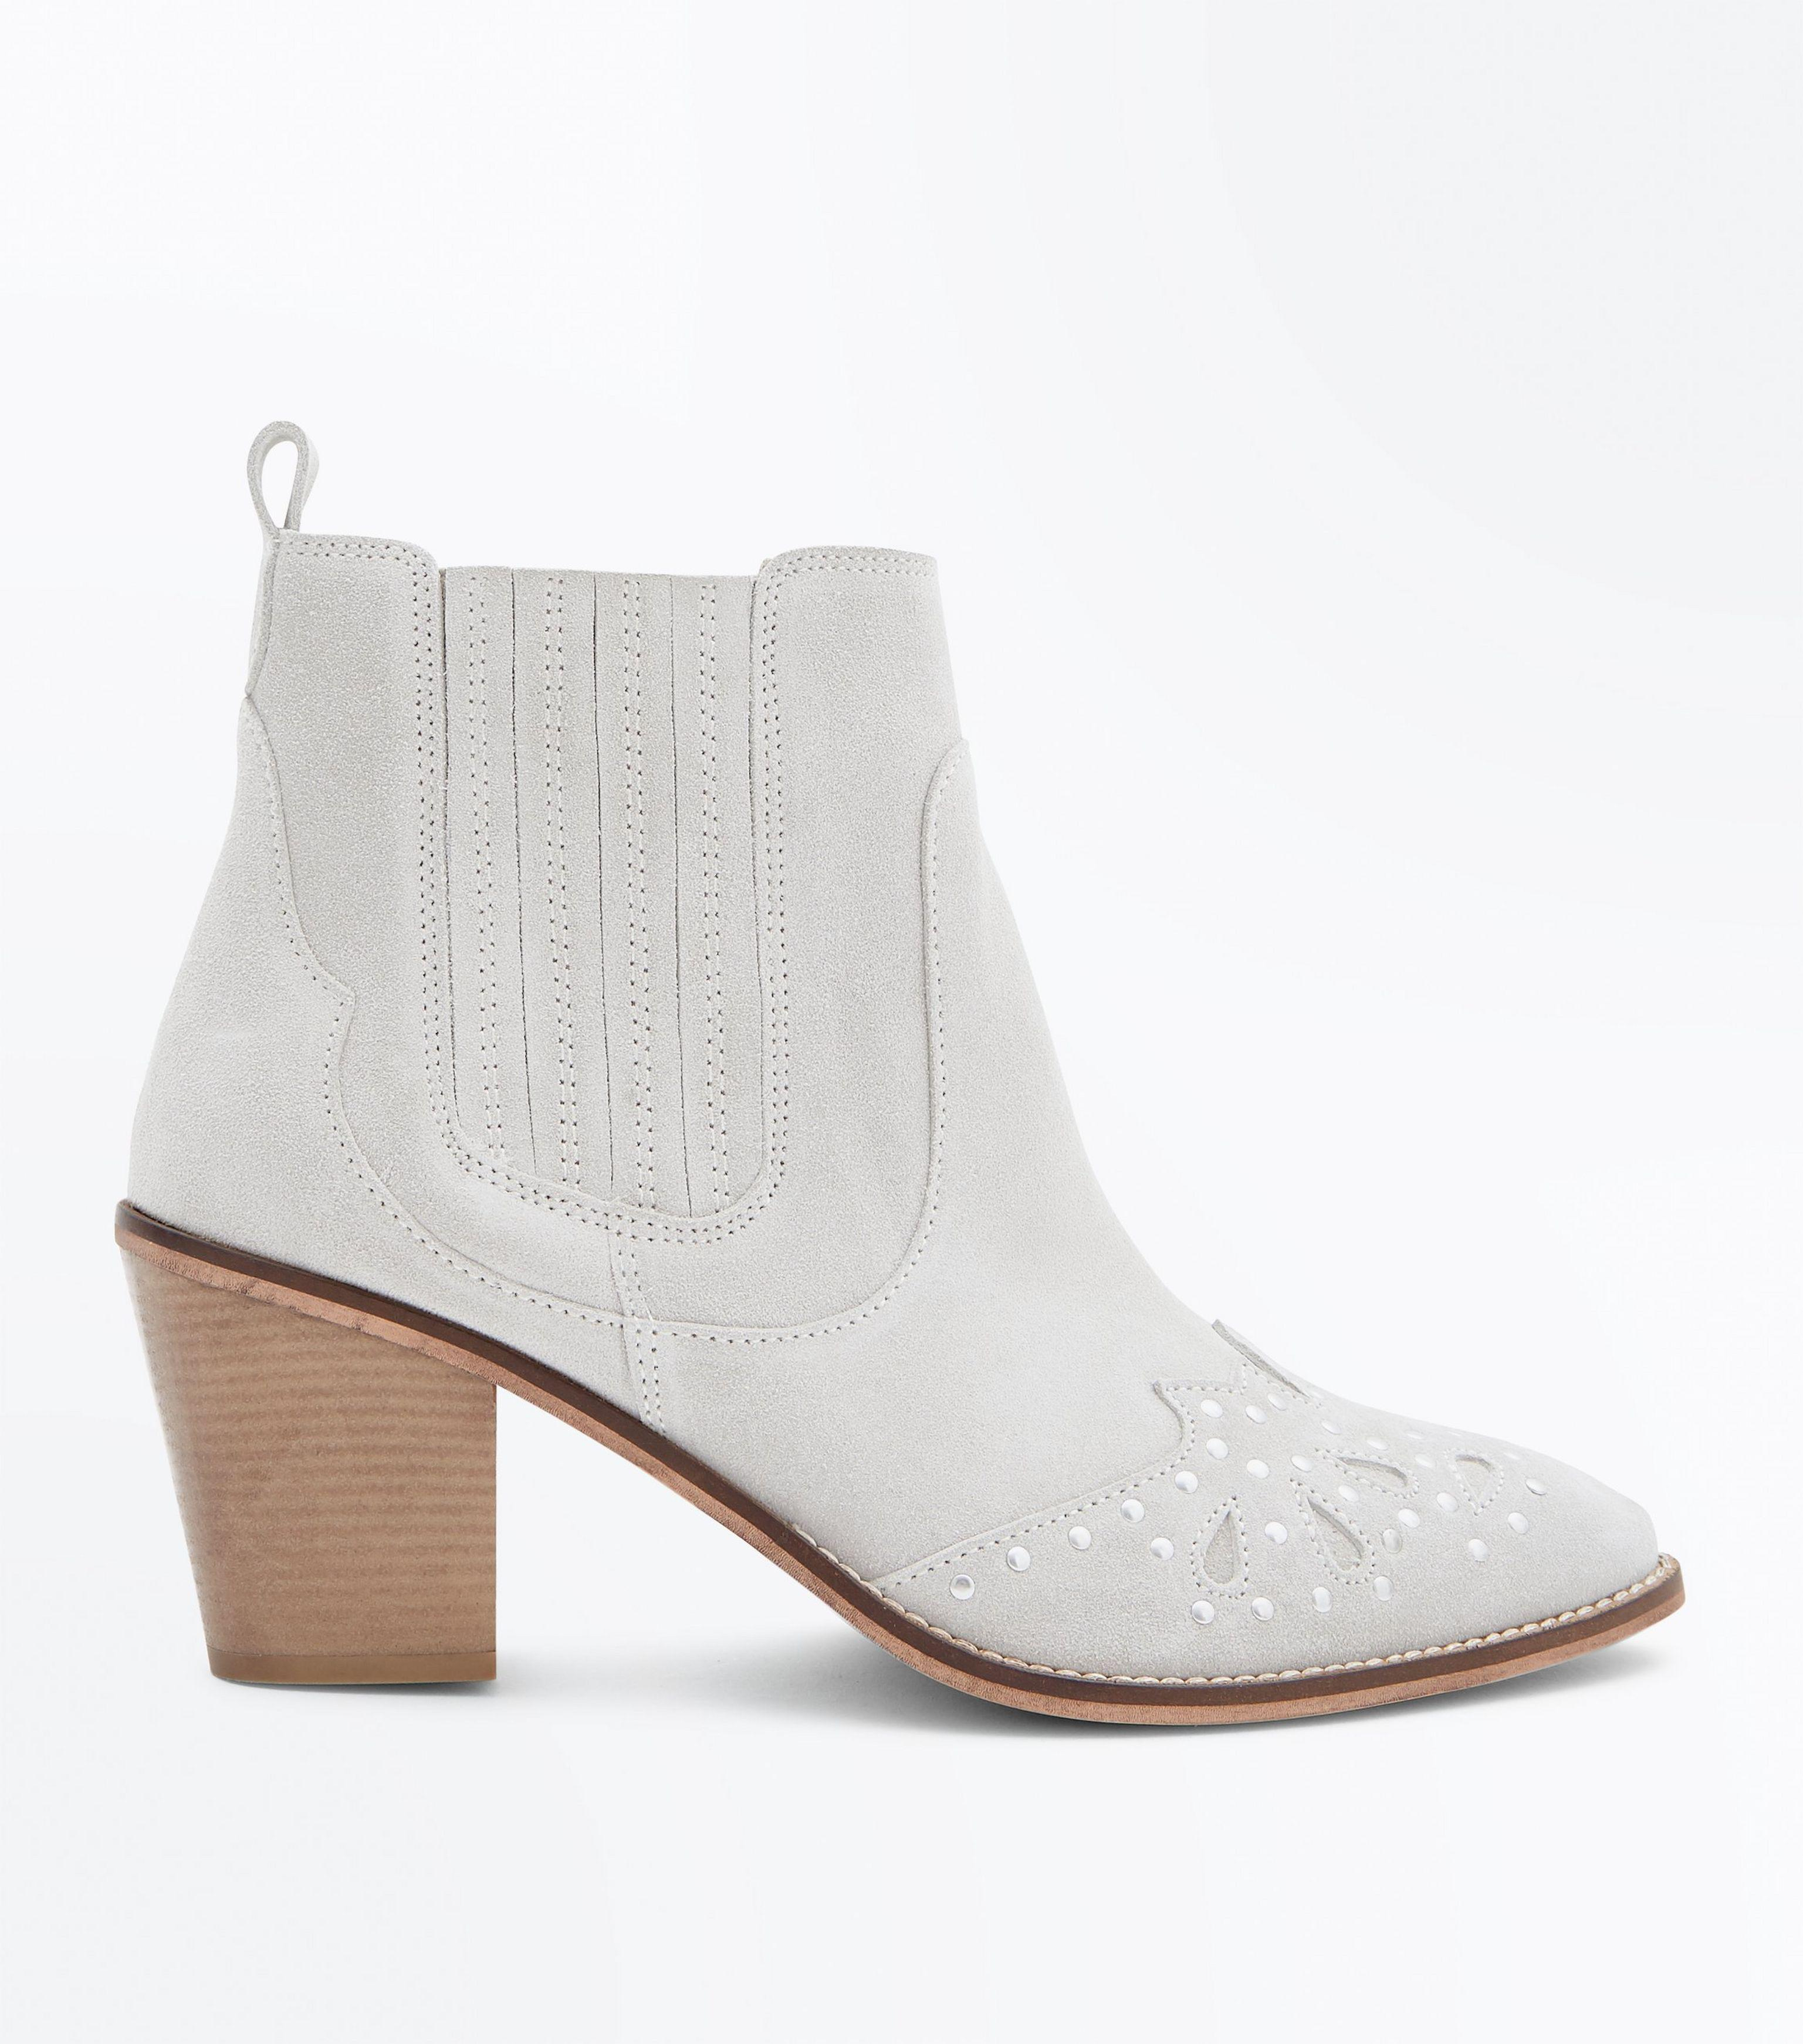 8ef8a0f0ae8 New Look Chloe's Finds Wide Fit Cream Suede Studded Western Boots in ...